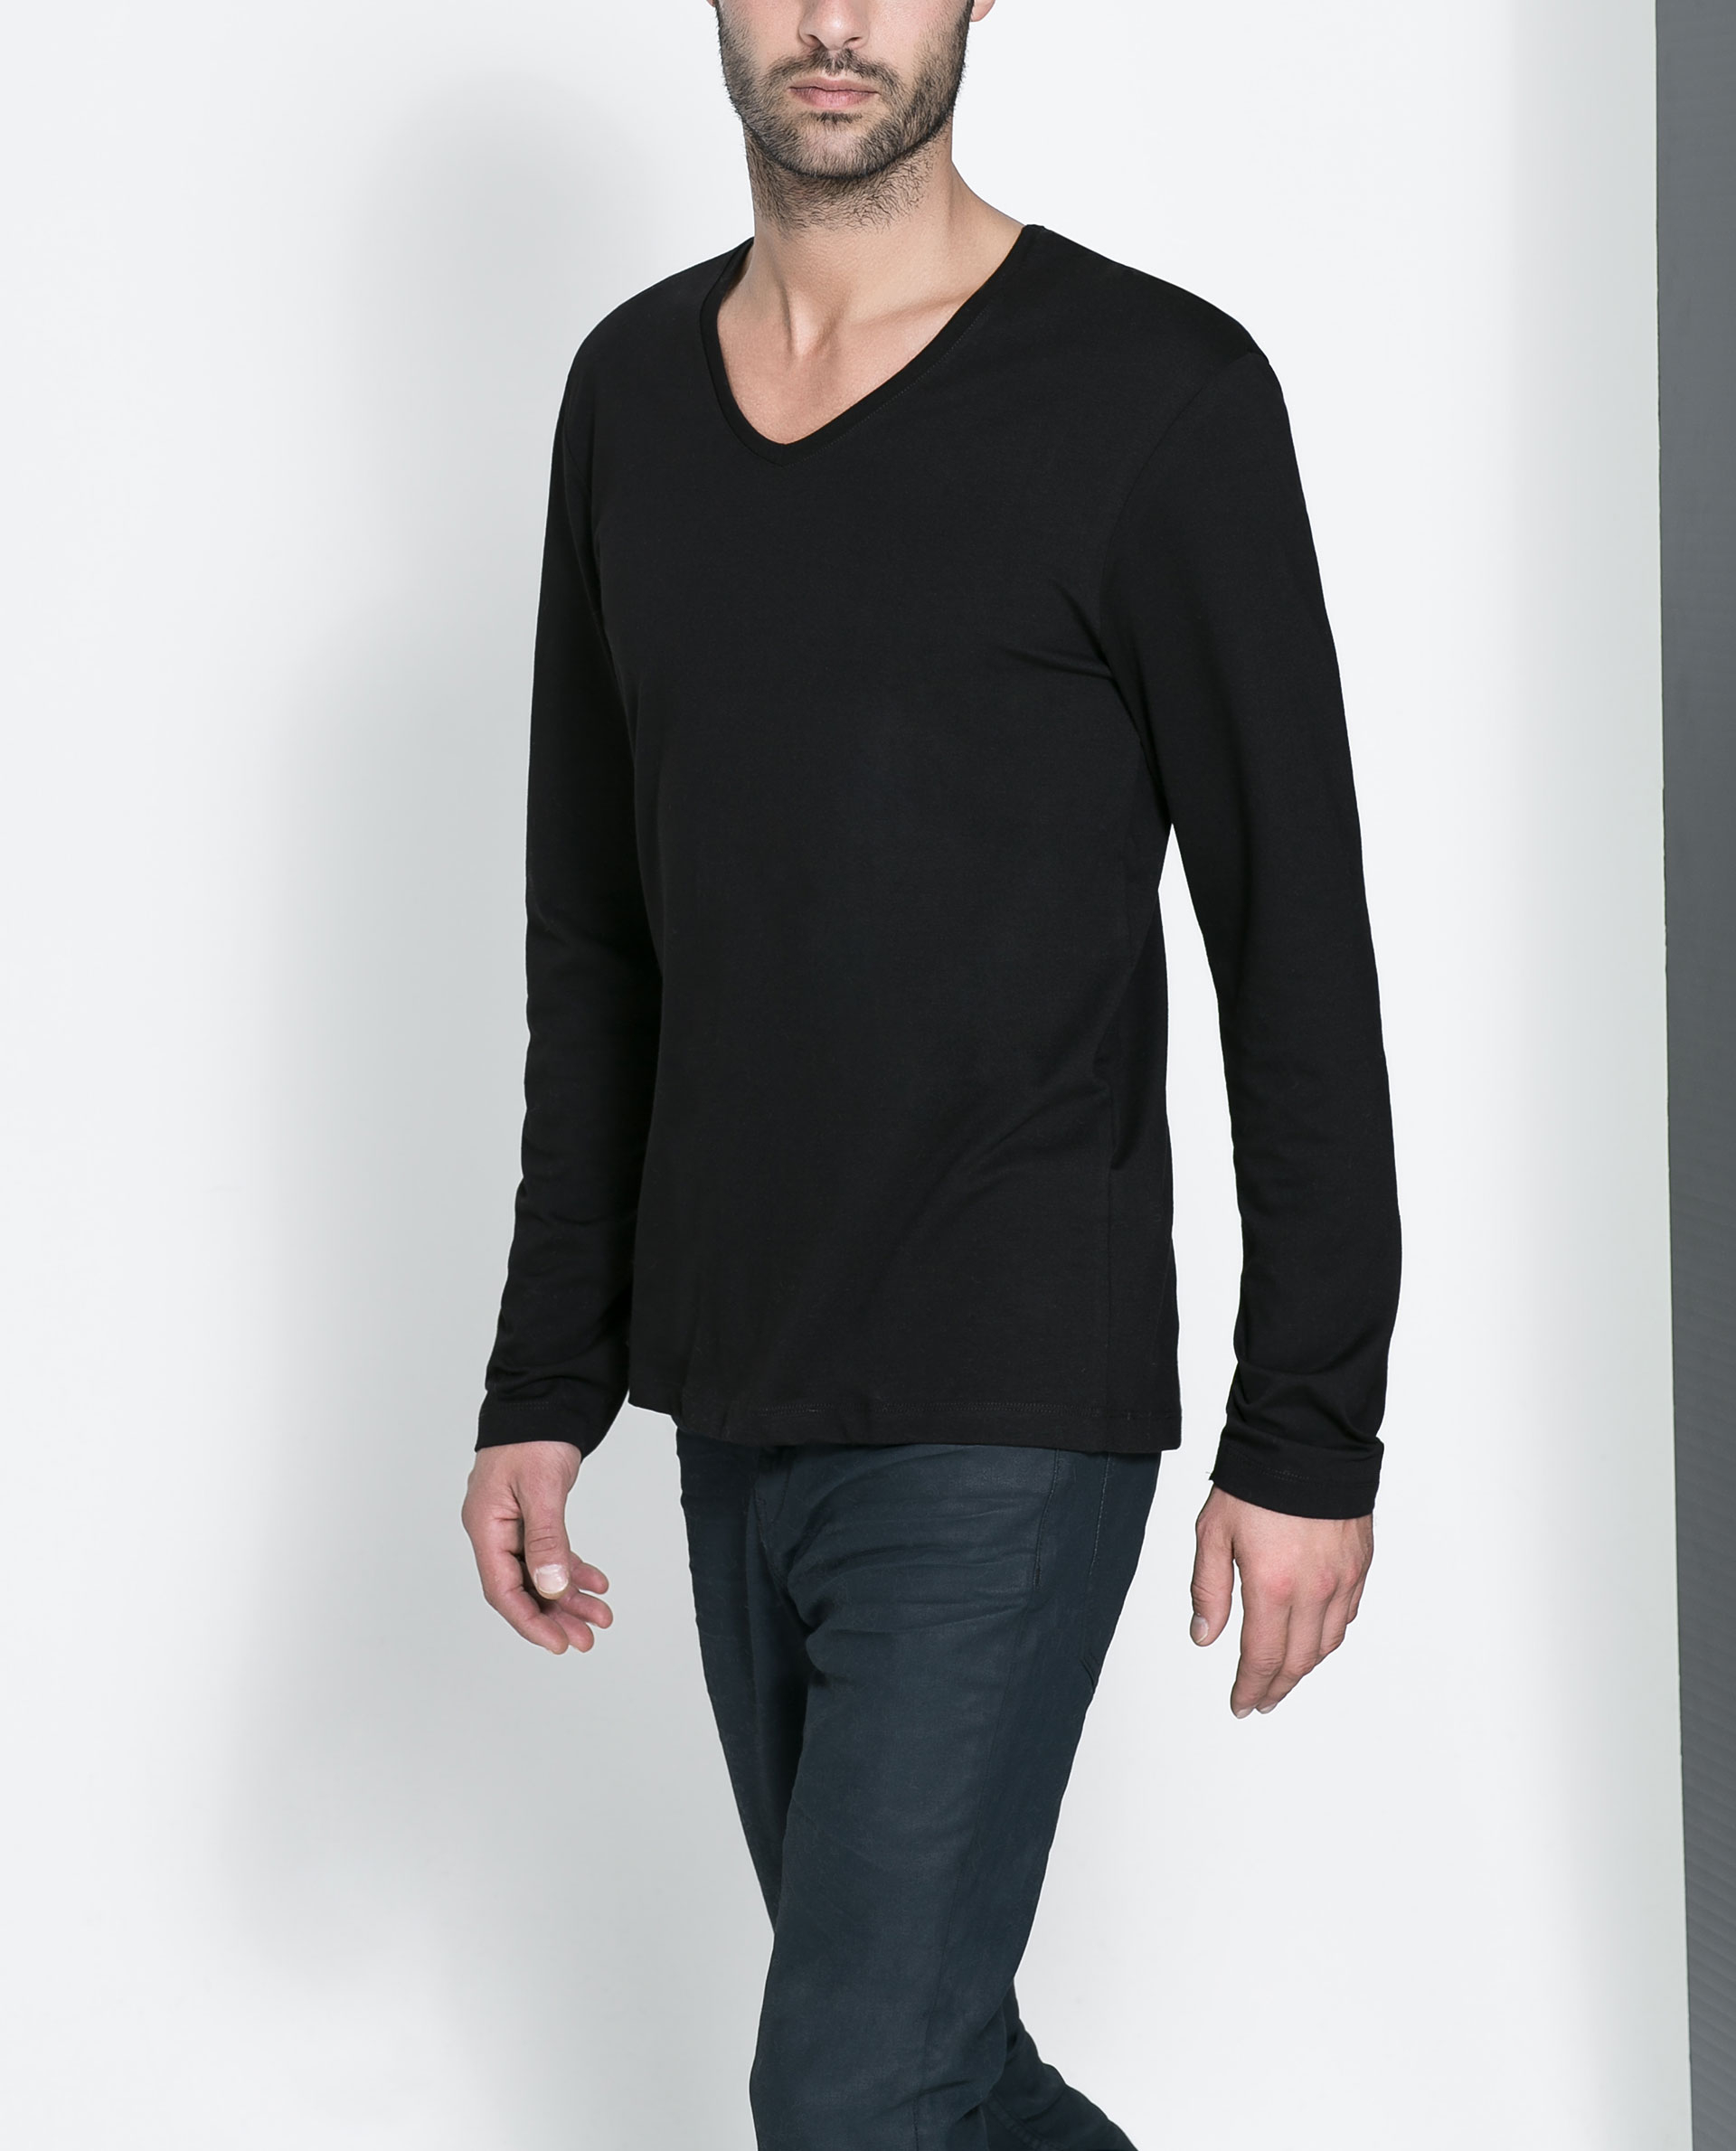 Zara Super Slim Fit T Shirt In Black For Men Lyst